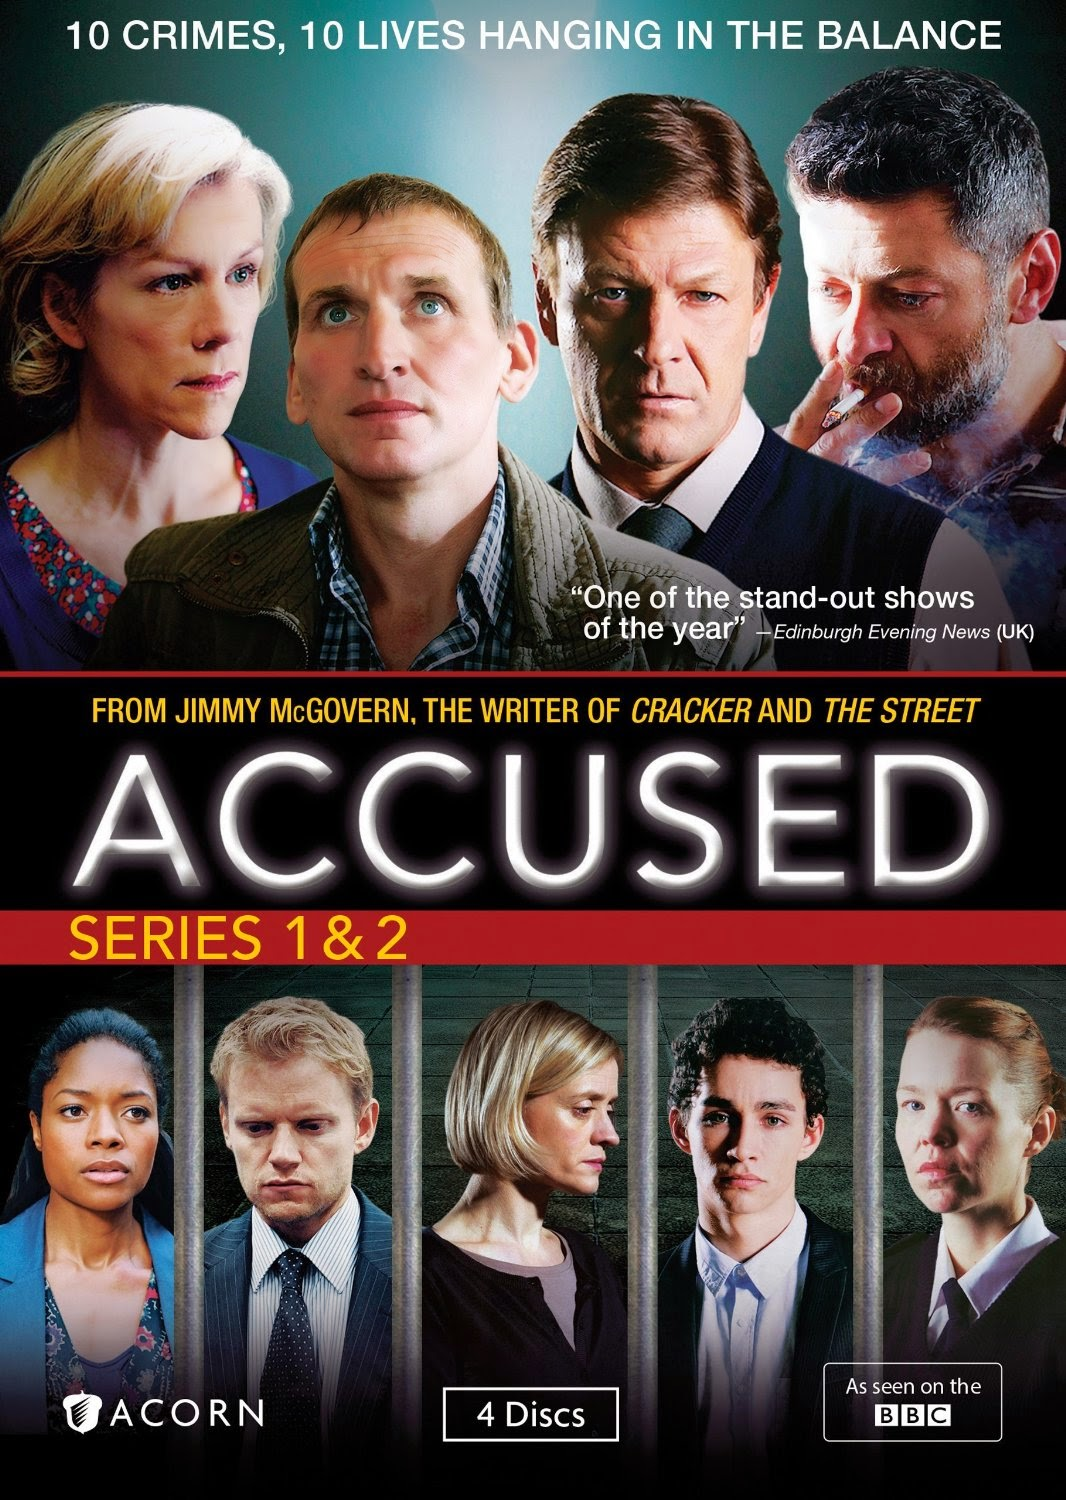 vpl film beat 2014 the accused series 1 2 nr murder arson and other deadly offenses all have a flash point when a person loses control over something or someone